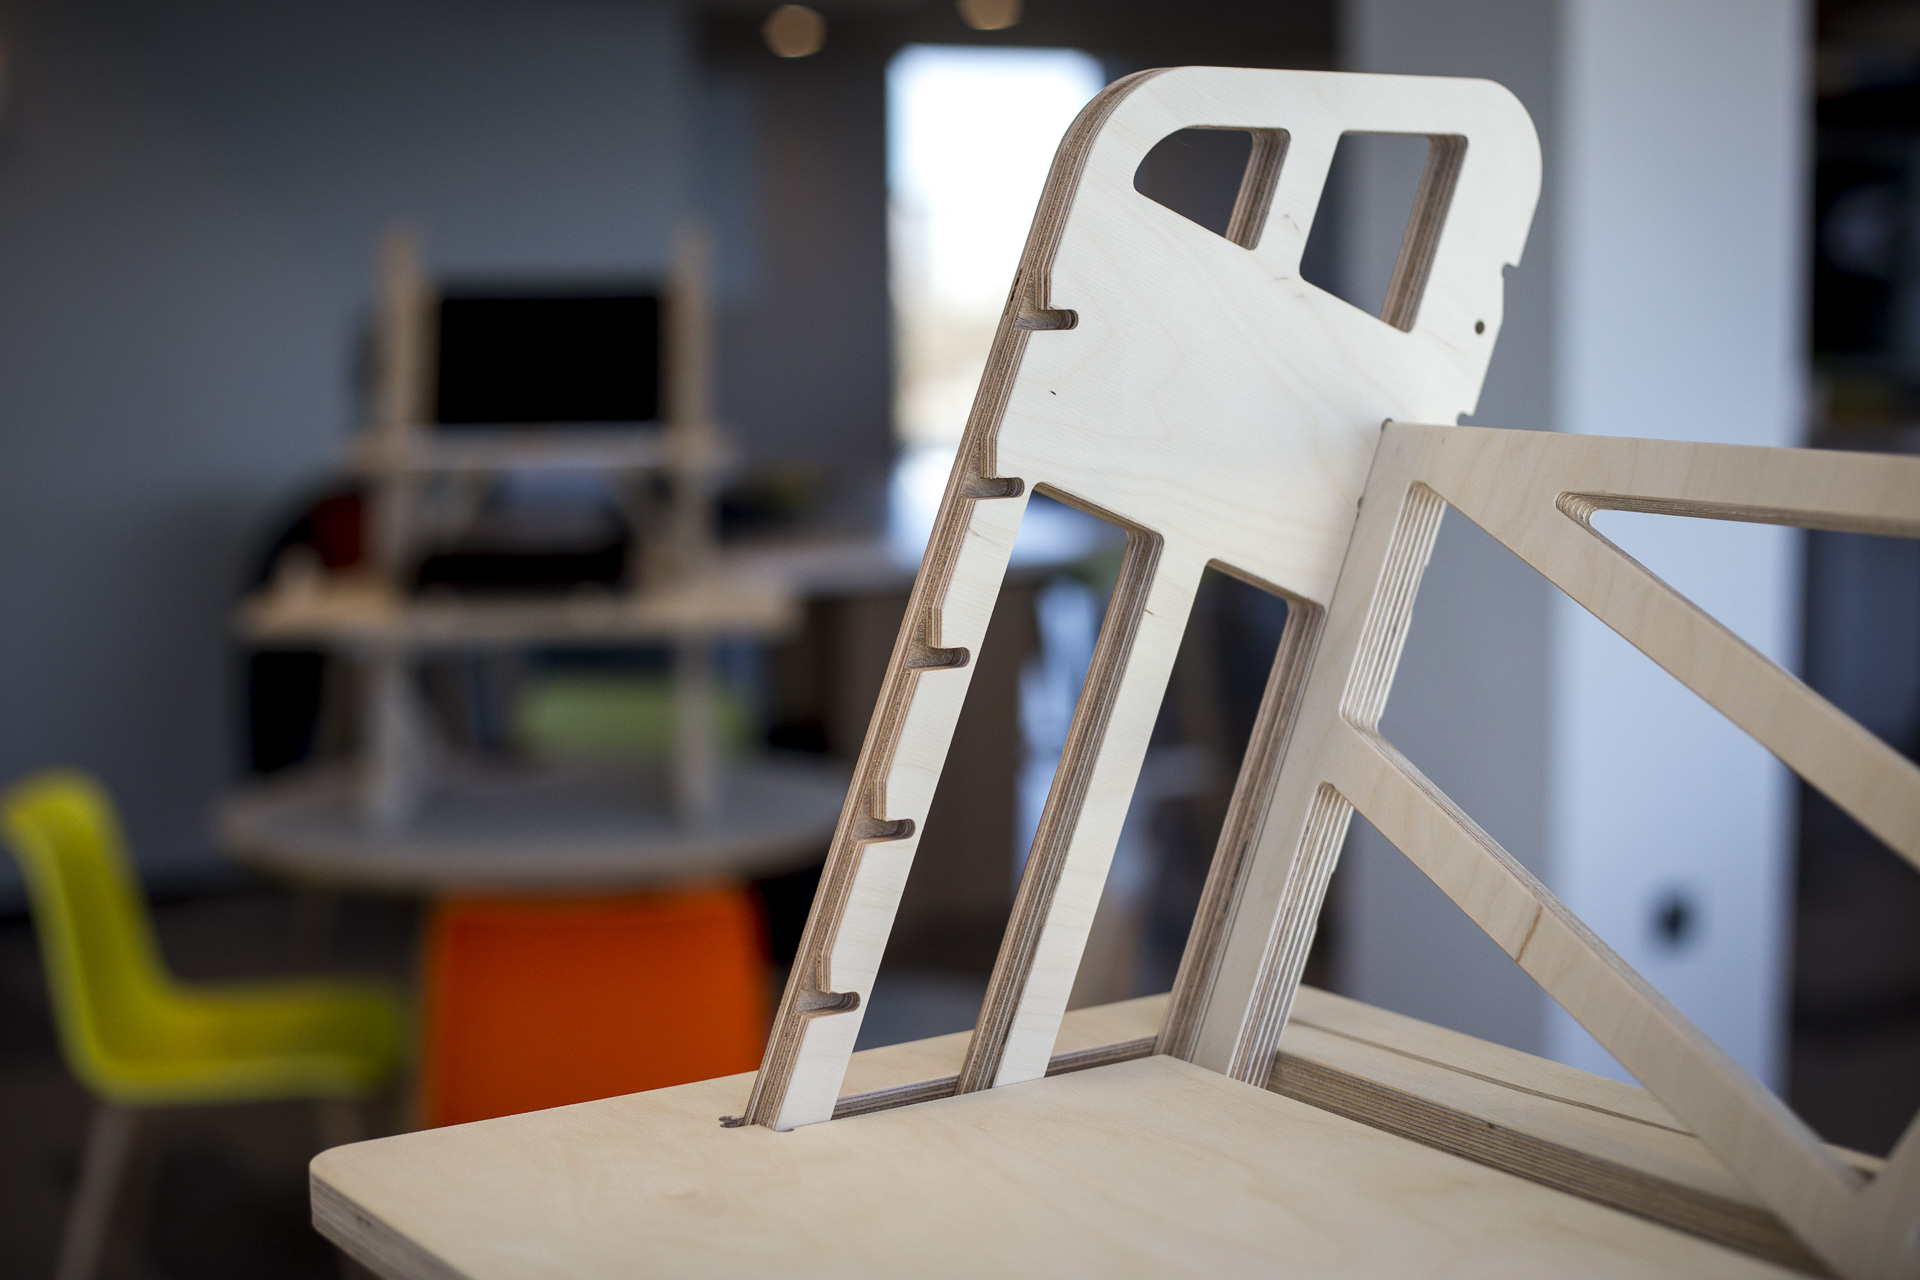 Side profile of the wooden standing desk